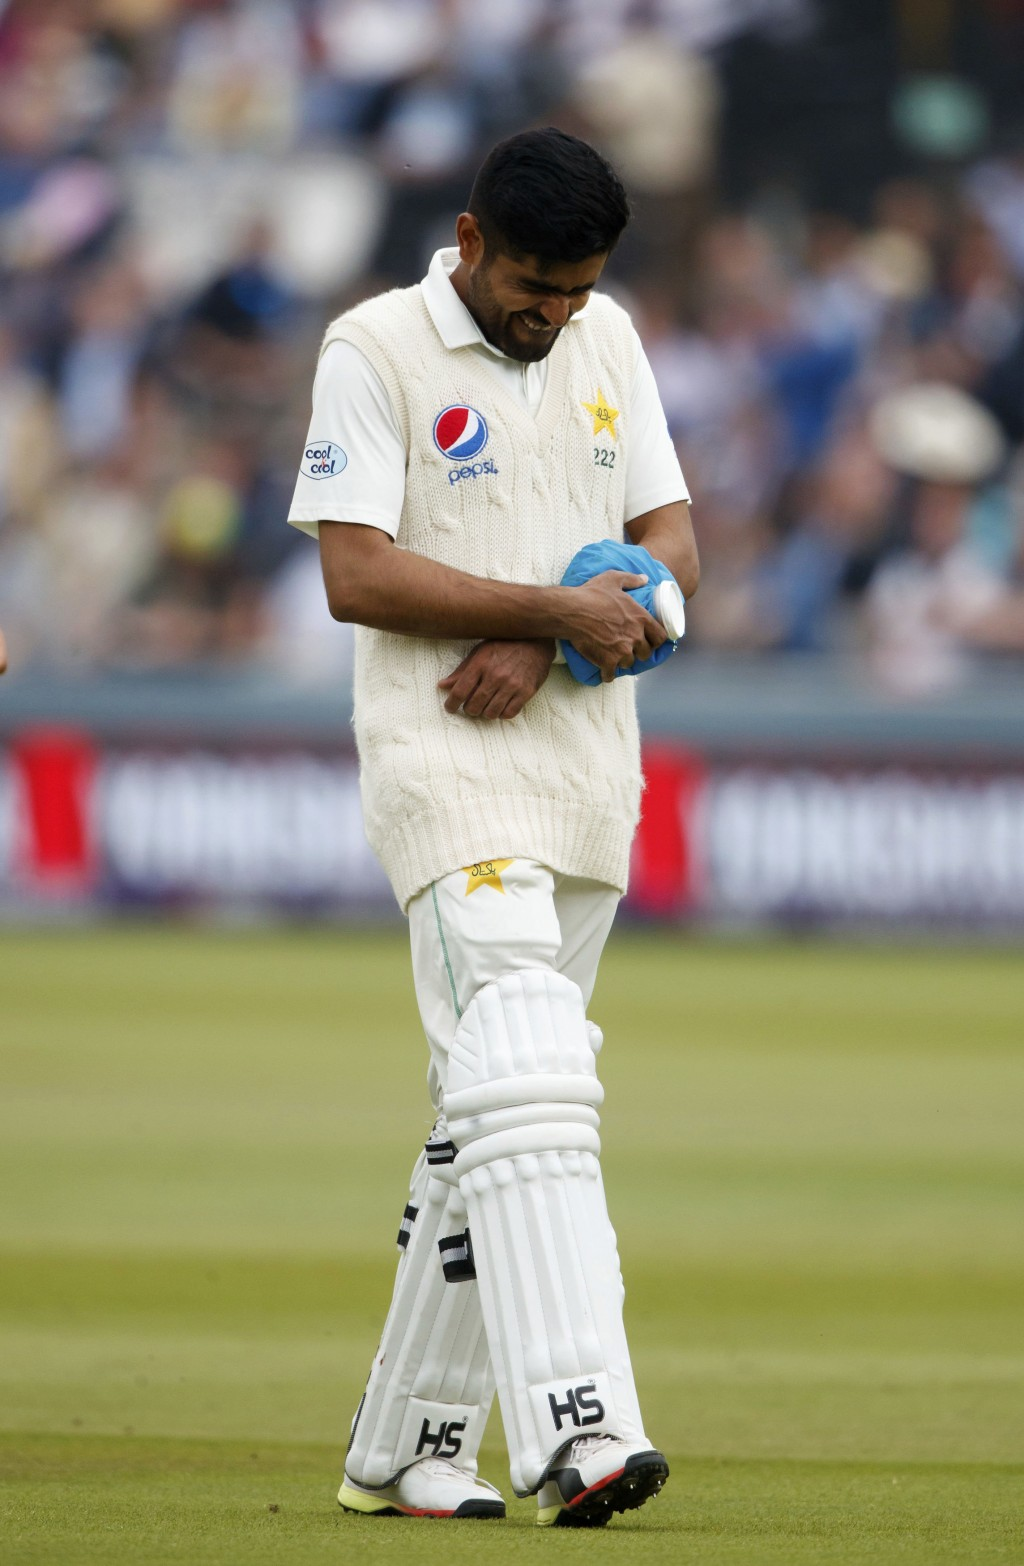 Pakistan's Babar Azam walks off after an injury during day two of the First NatWest Test Series match at Lord's, London, Friday May 25, 2018. (John Wa...